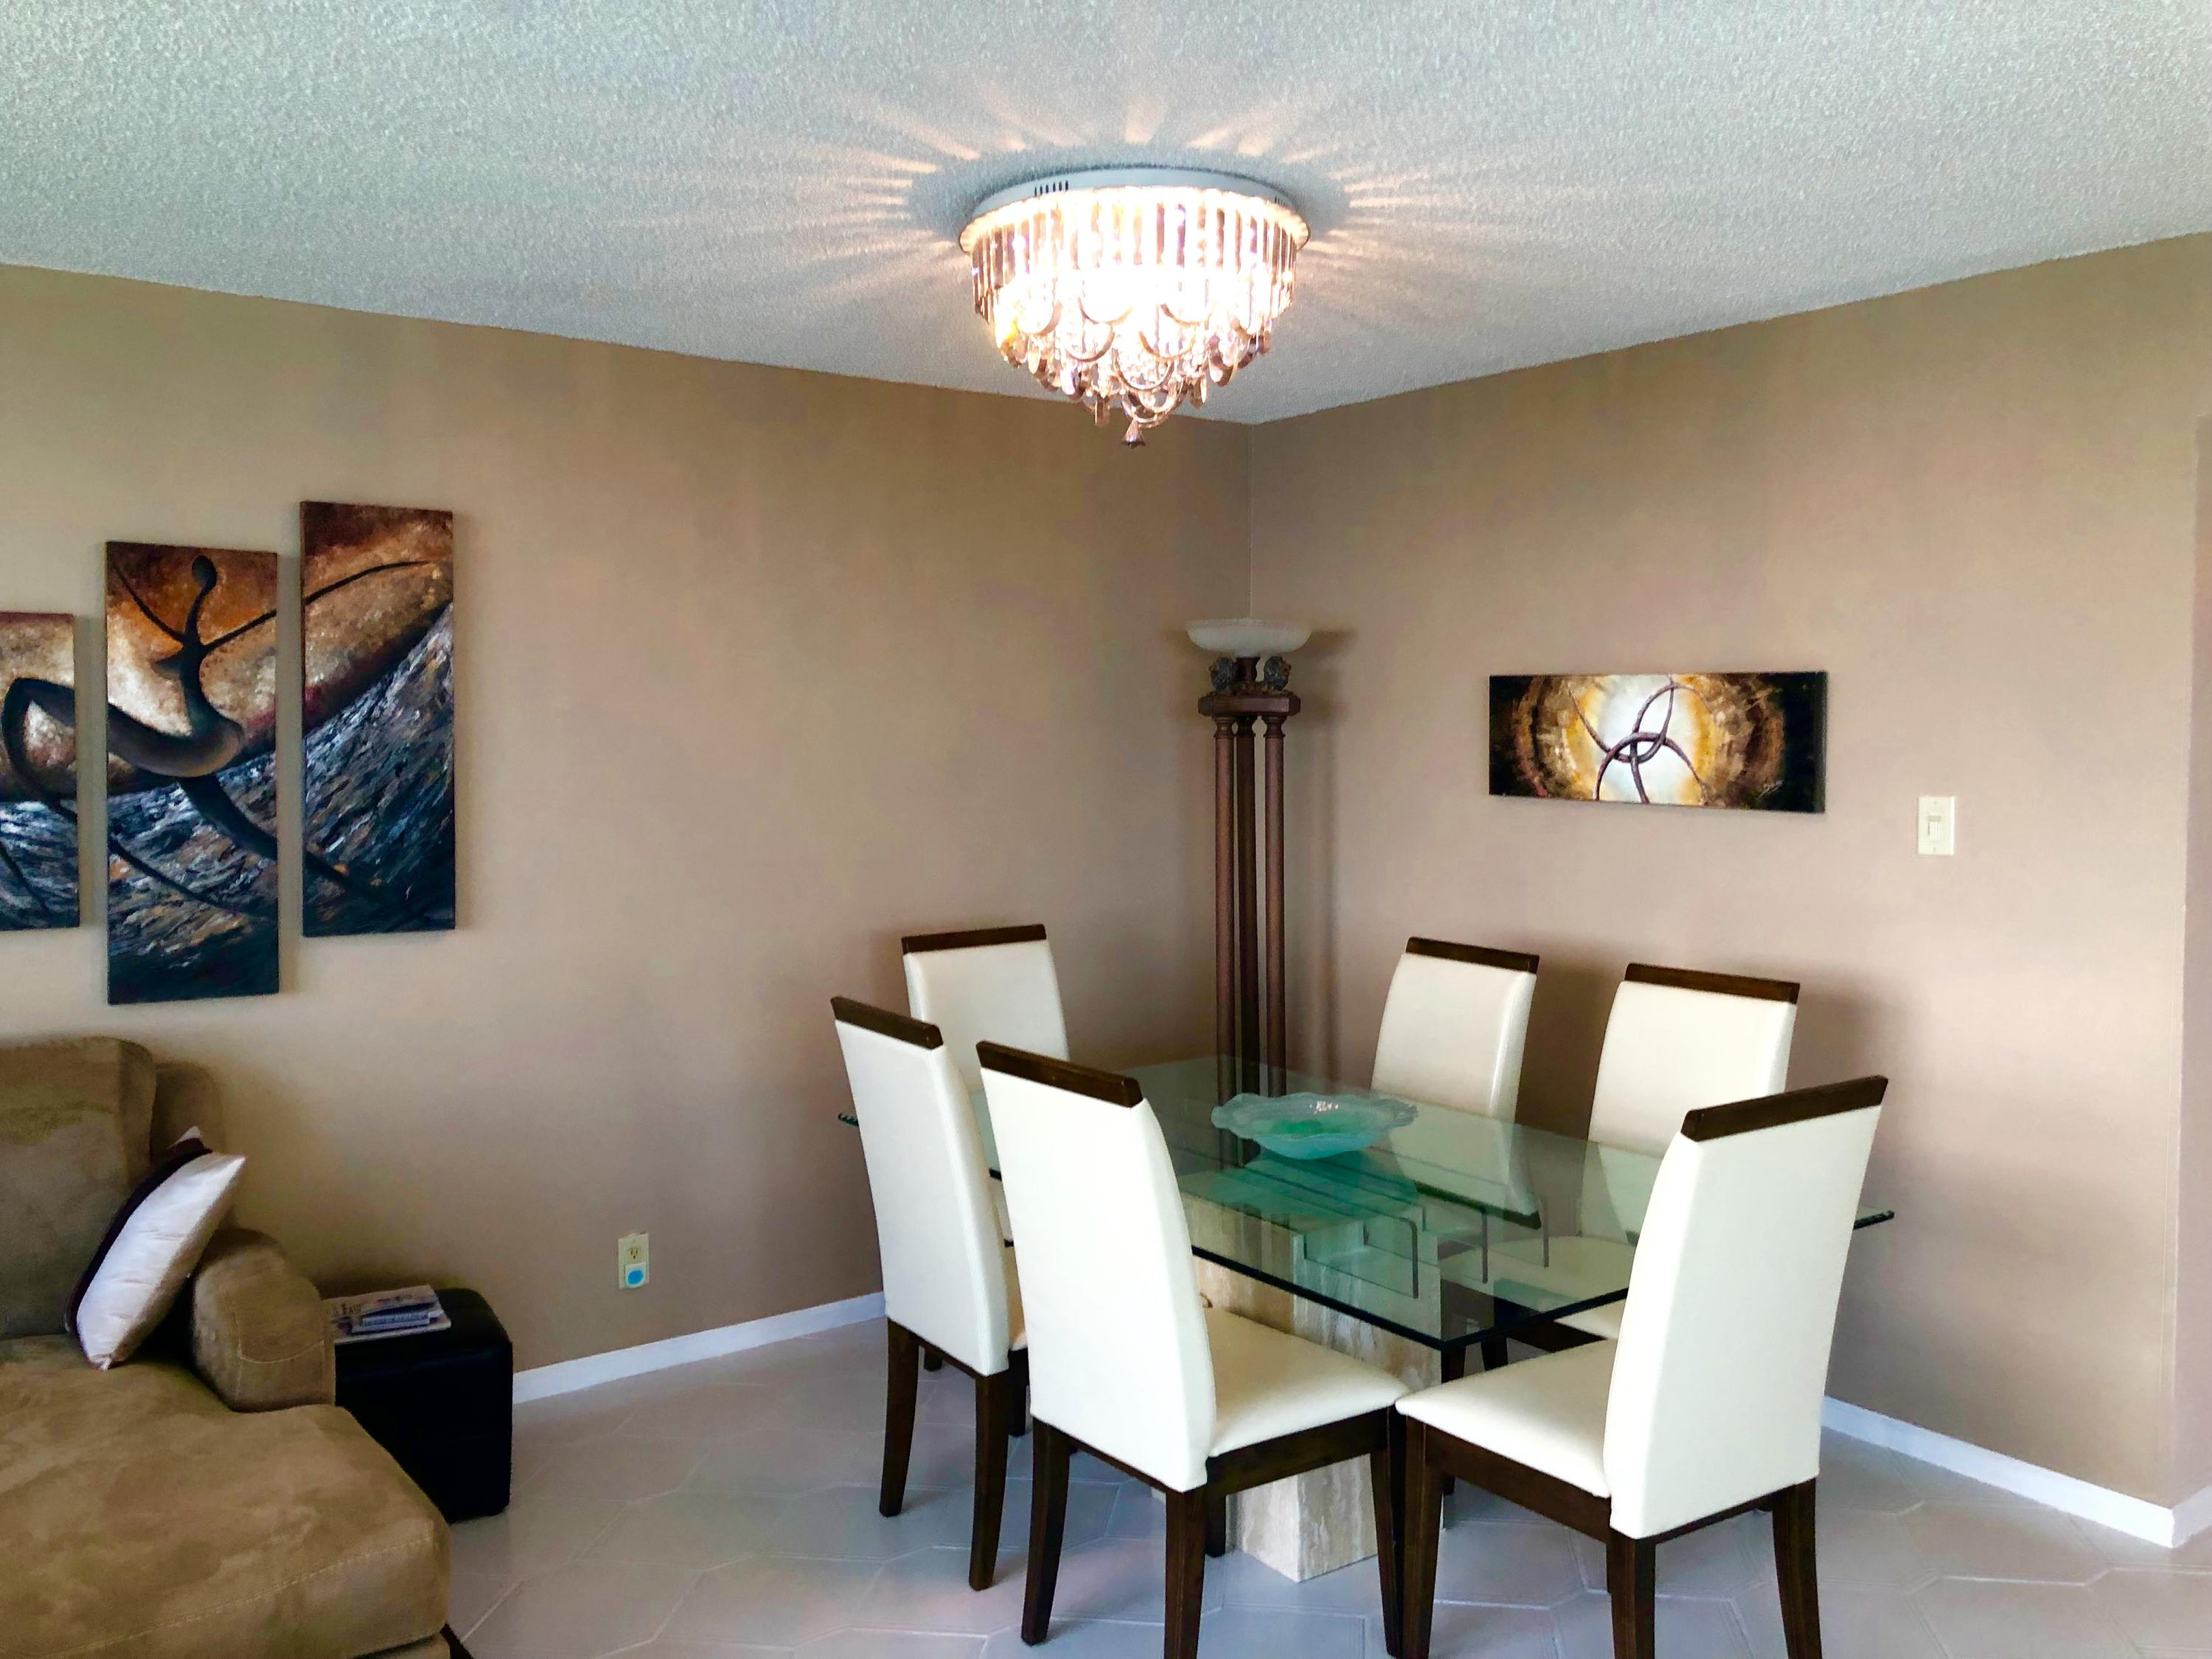 DINING AREA TABLE